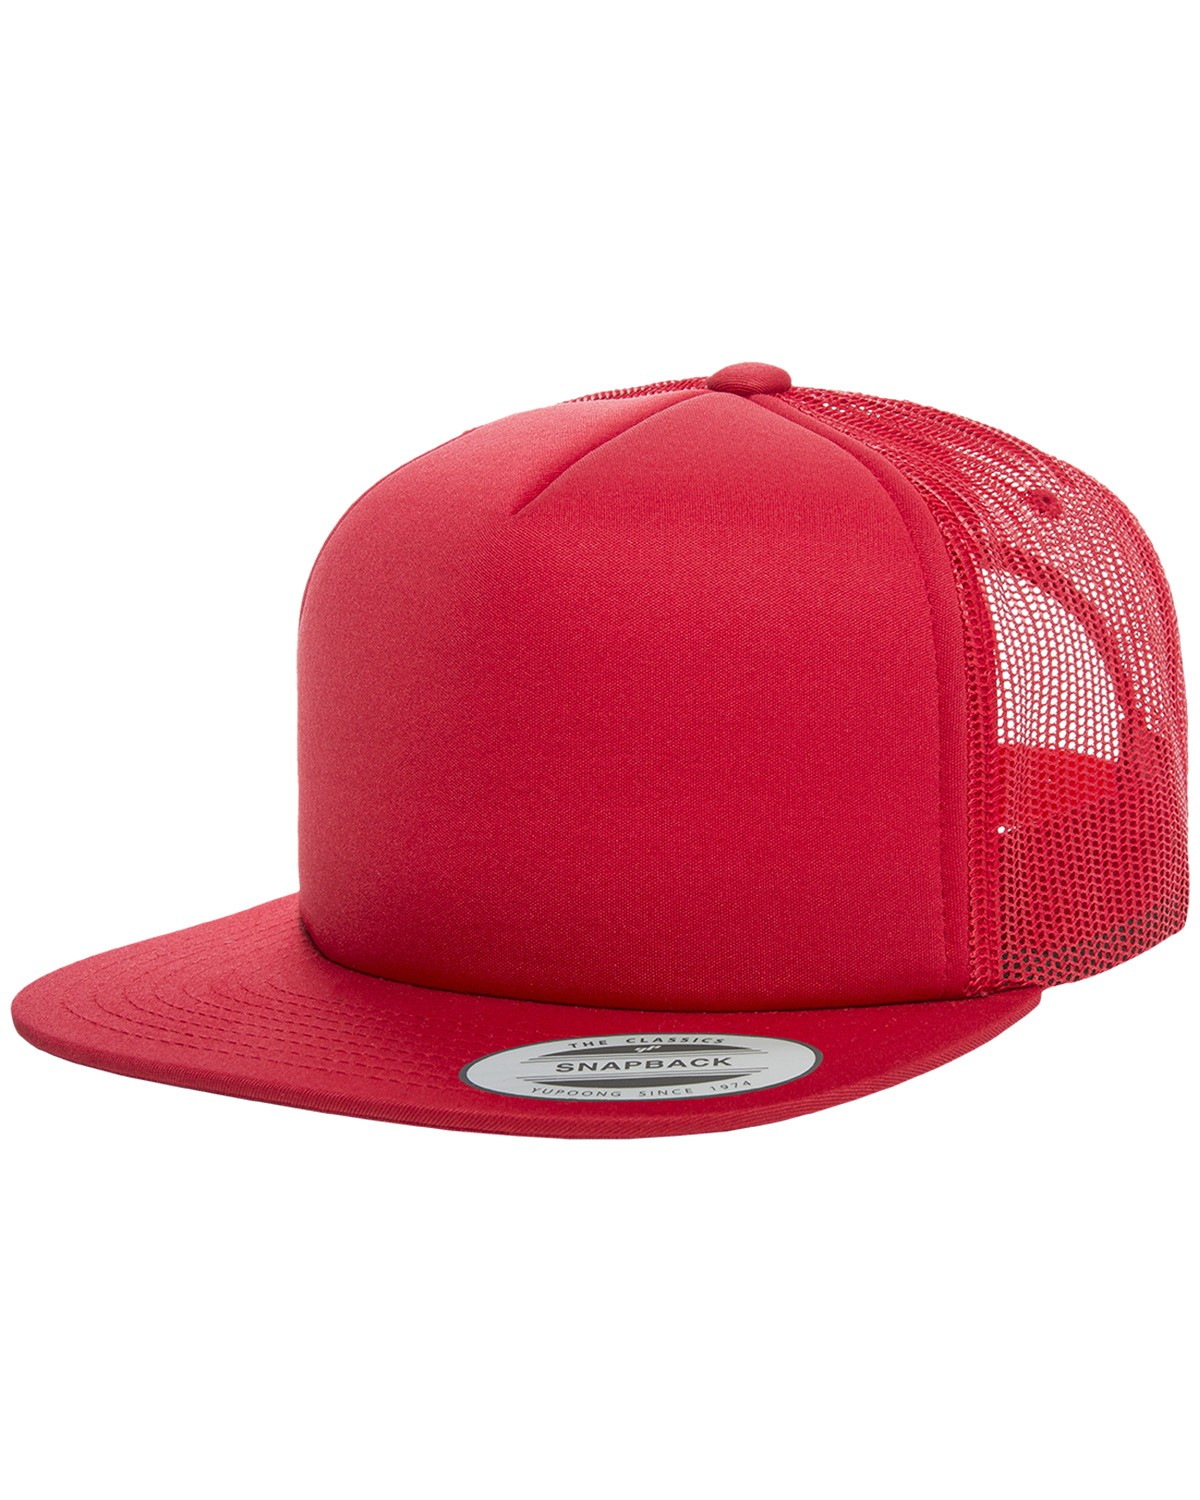 6005FF Yupoong RED